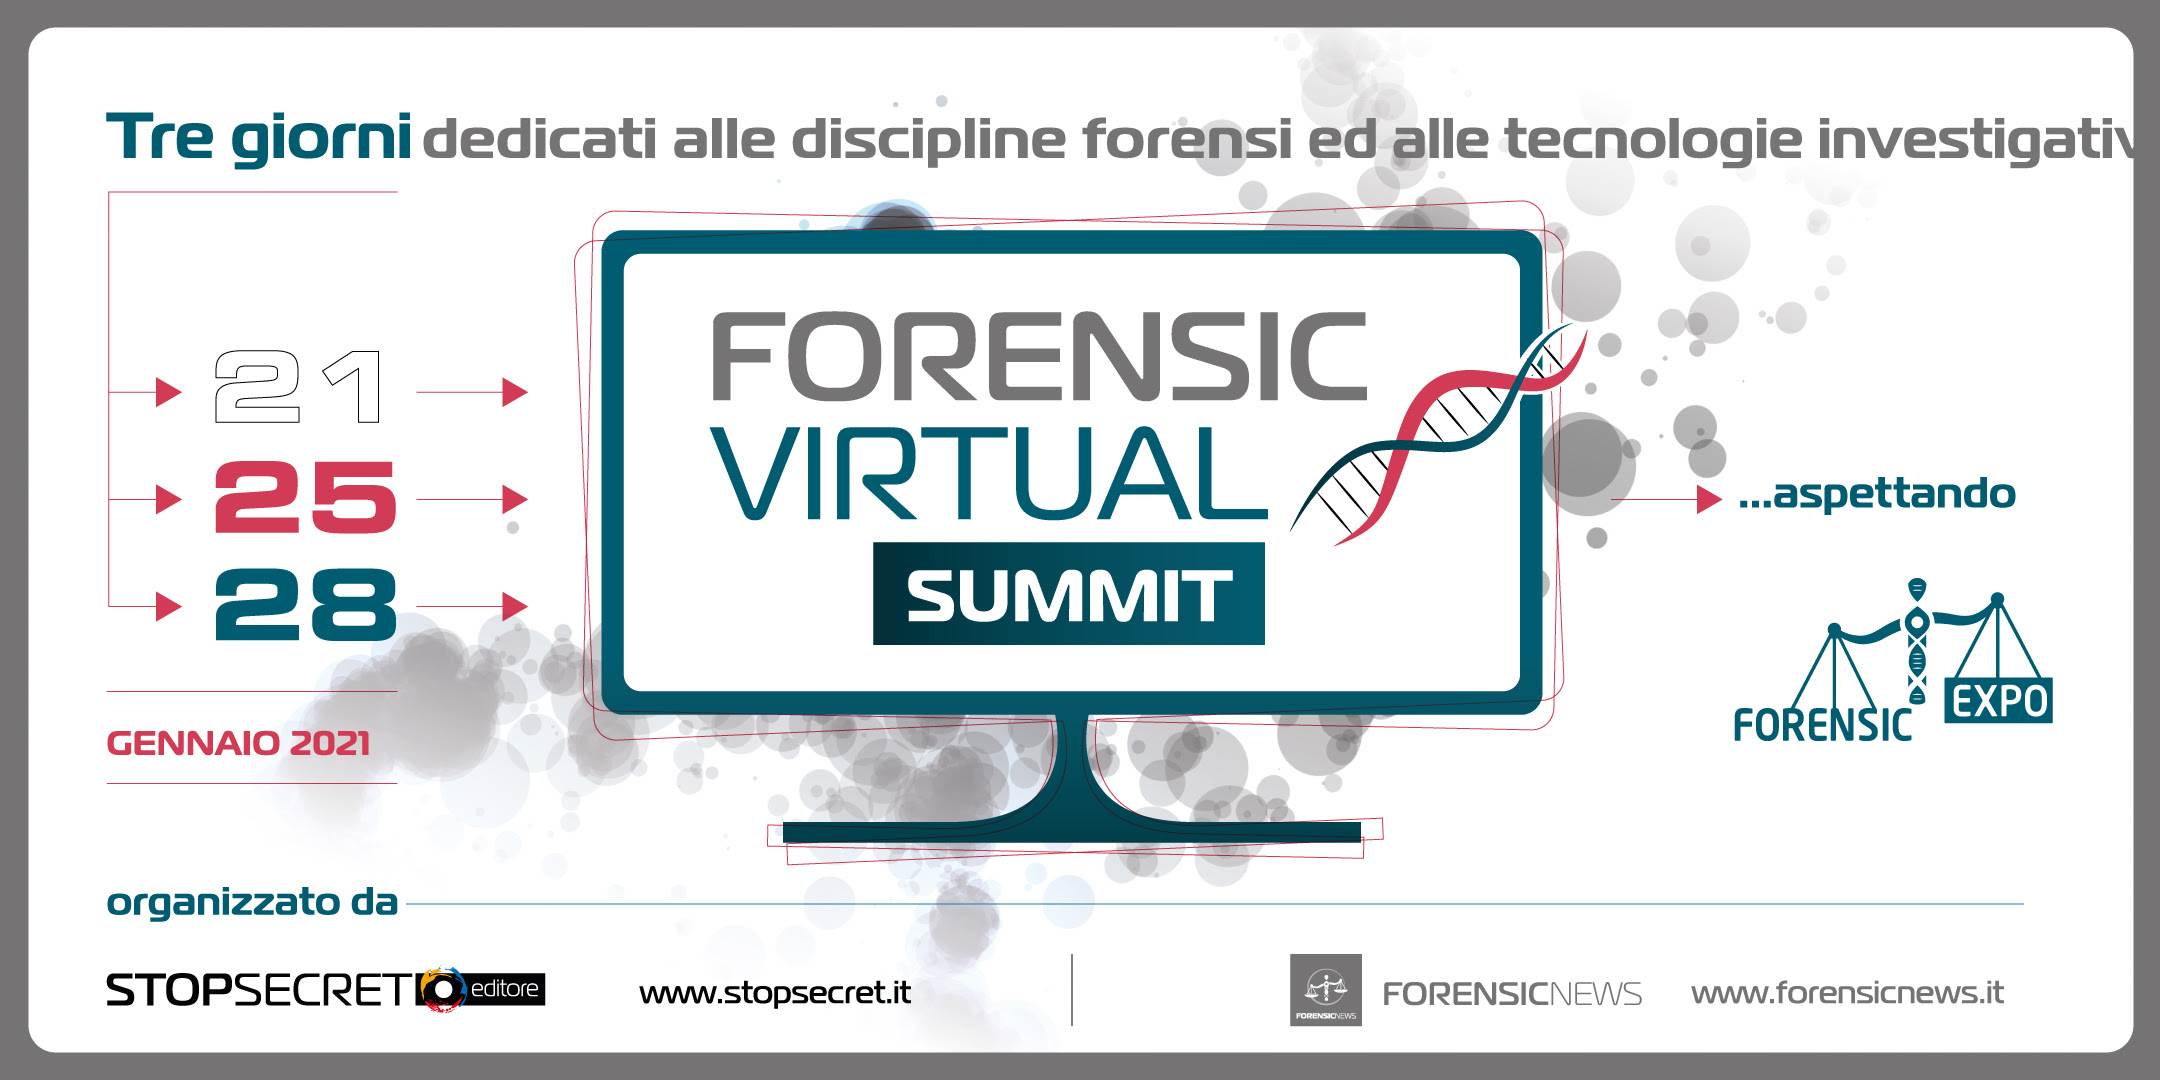 Forensic Virtual Summit